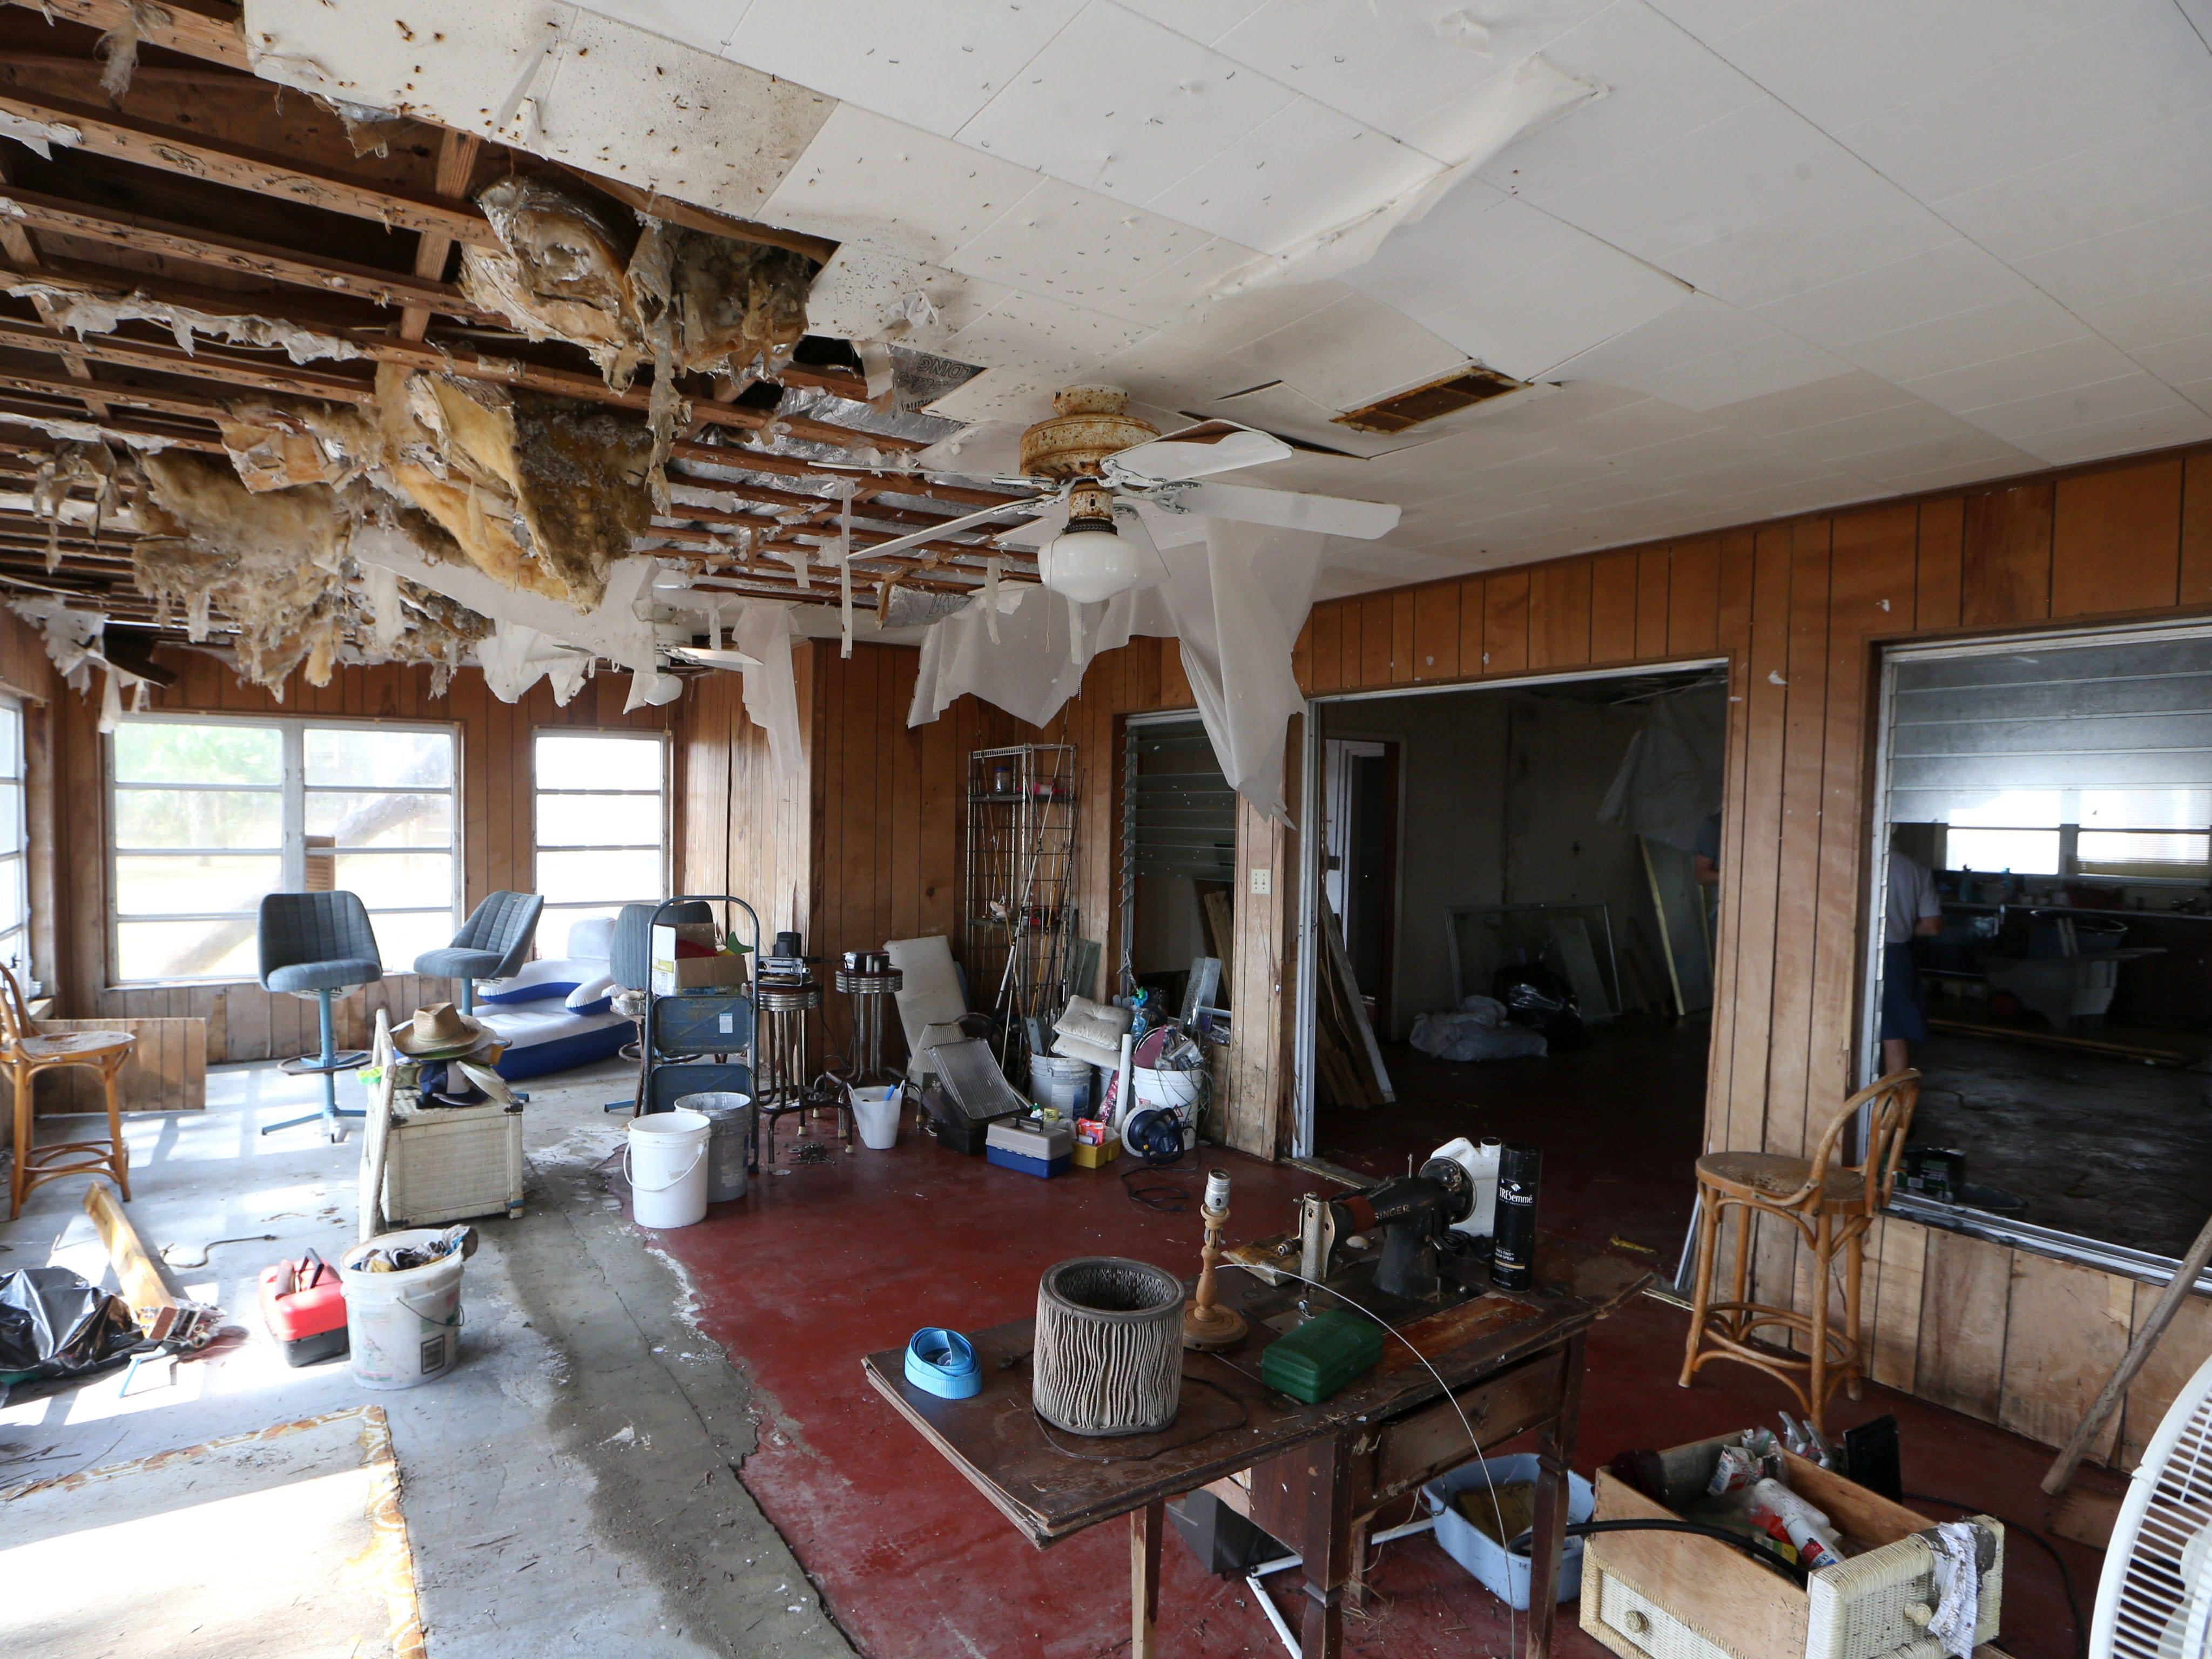 Wilson Wright's home in Carrabelle Beach experienced a significant amount of storm surge after Hurricane Michael on Monday, Oct. 15, 2018.